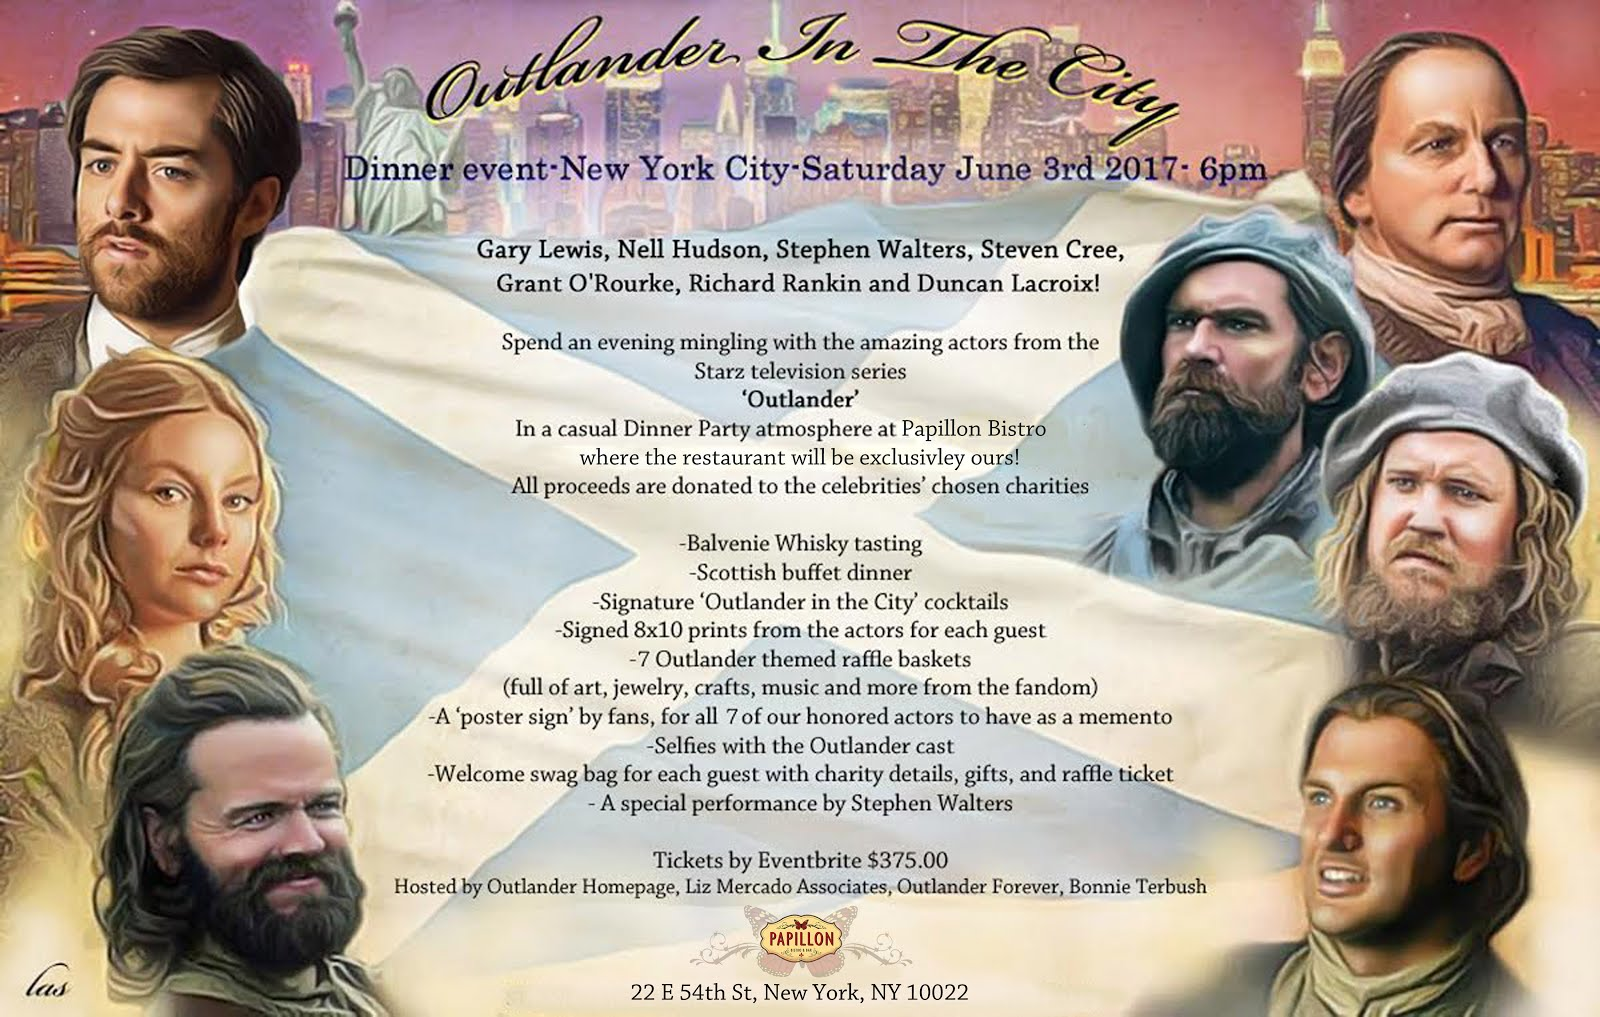 Outlander in the City Dinner event!